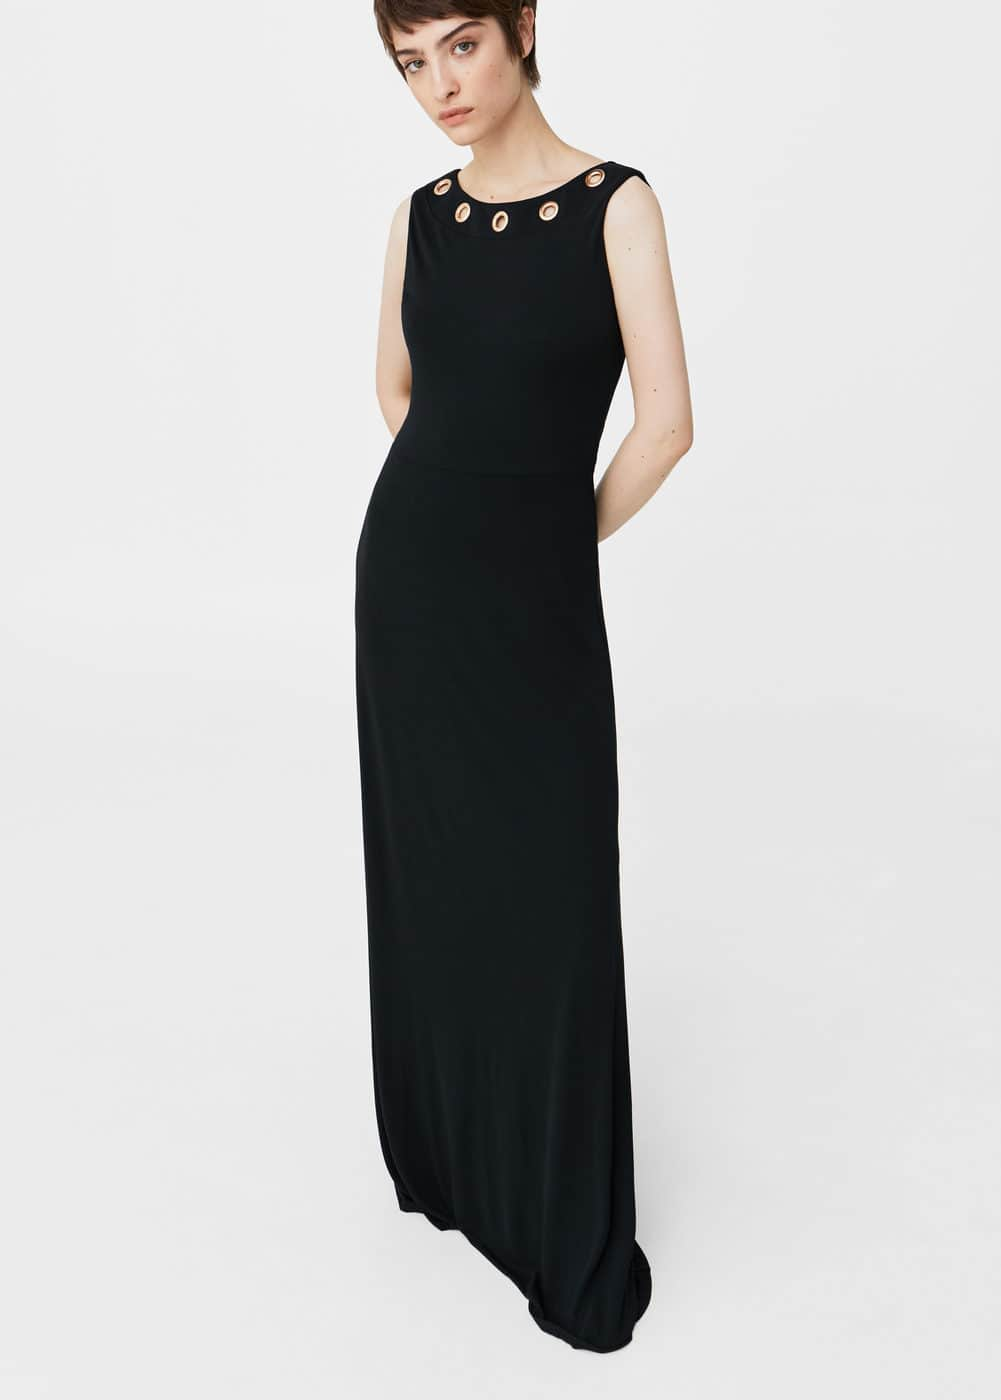 Eyelets neckline dress | MANGO